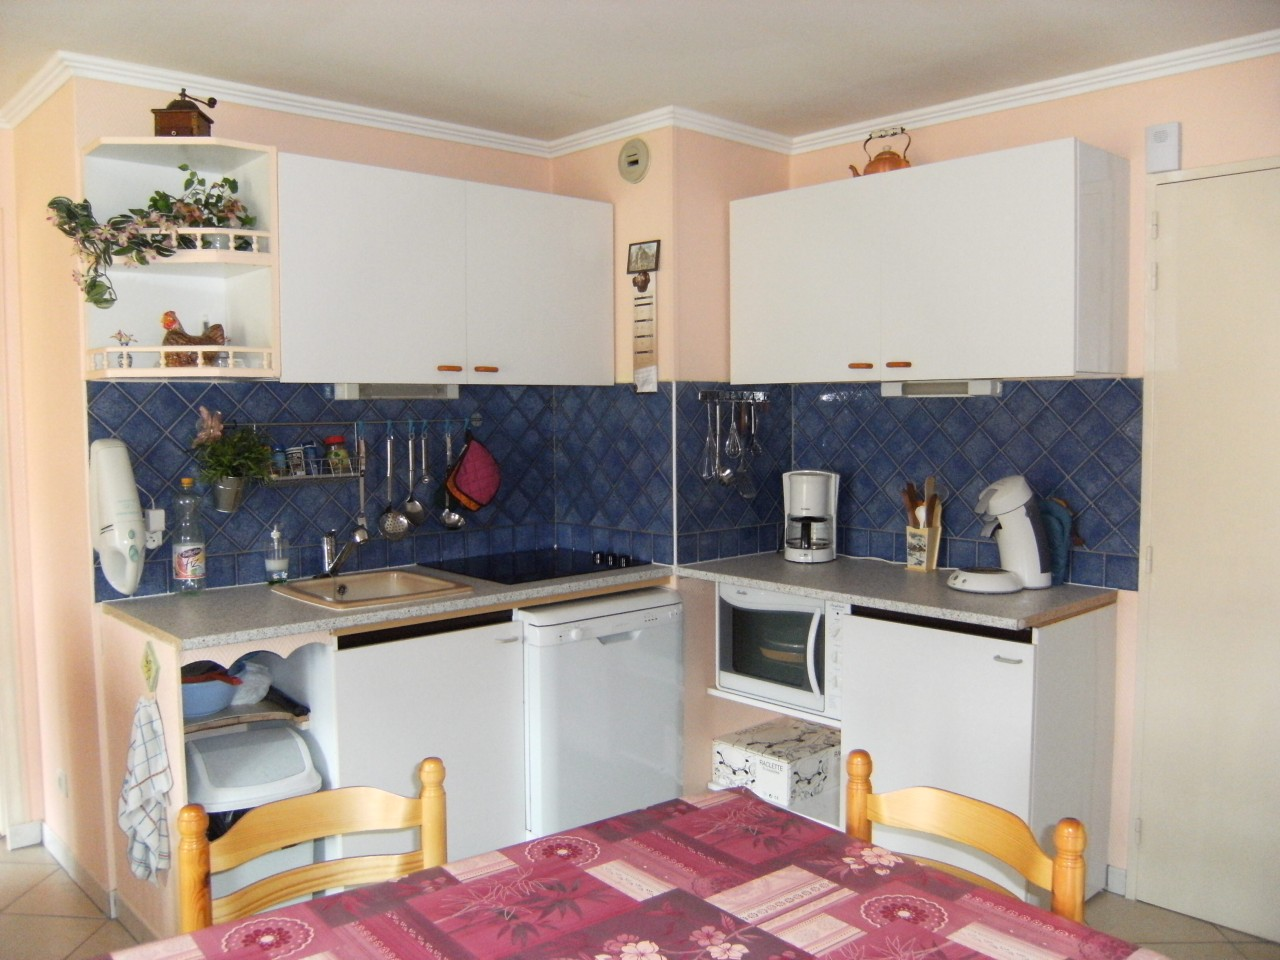 Agence immobili re g rardmer annonce appartements n 2062 for Agence immobiliere gerardmer